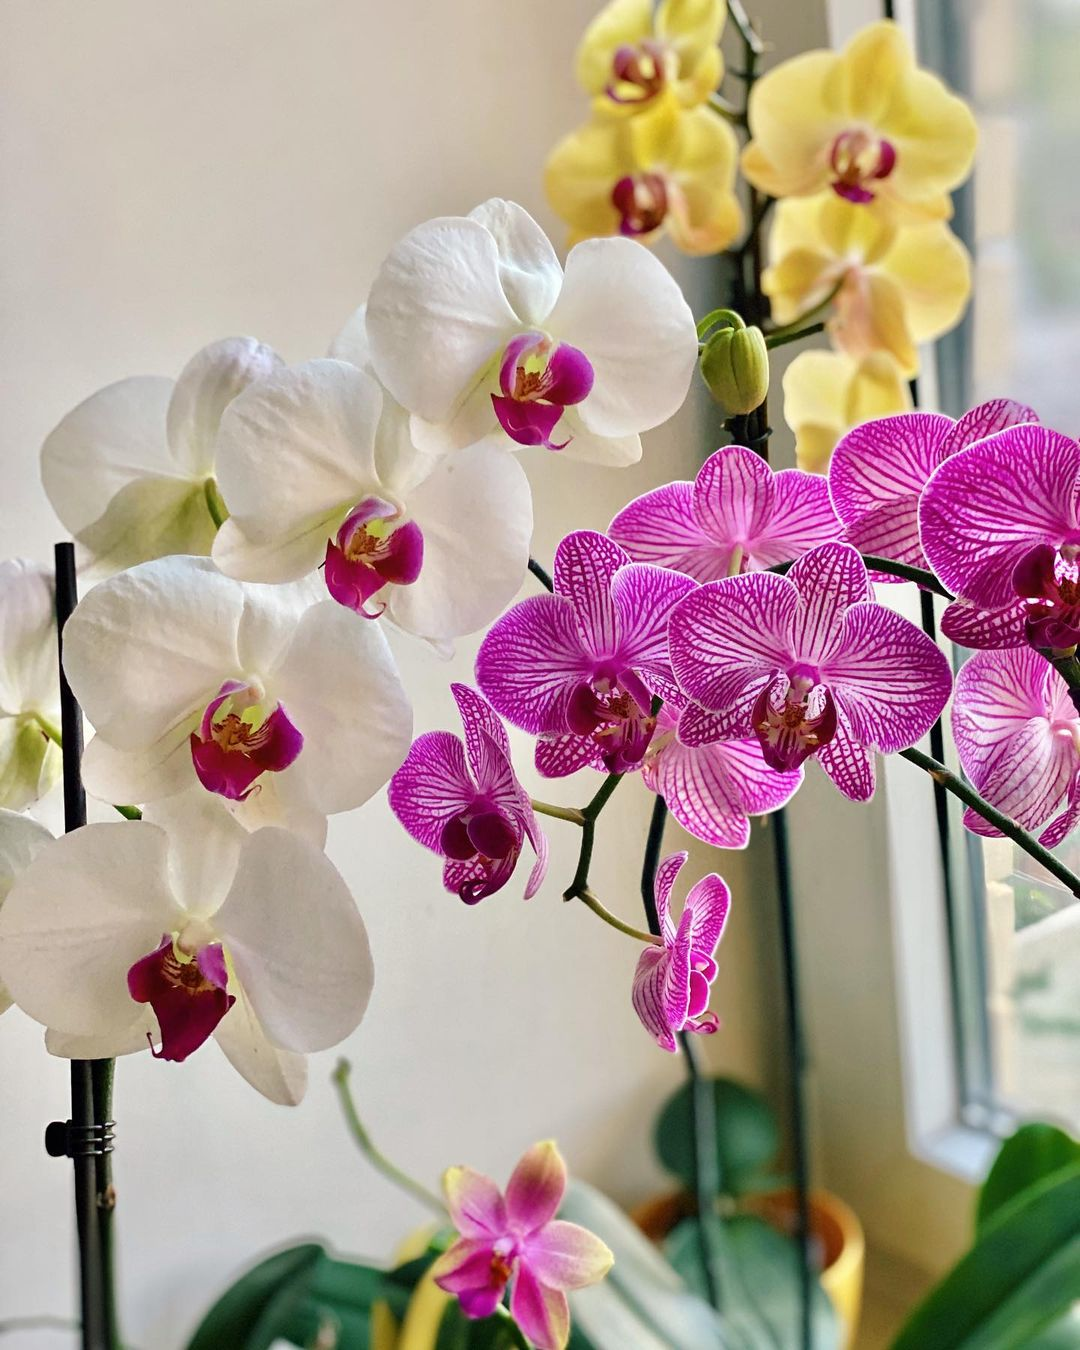 luxury activities singapore - orchid tour and perfume workshop (1)